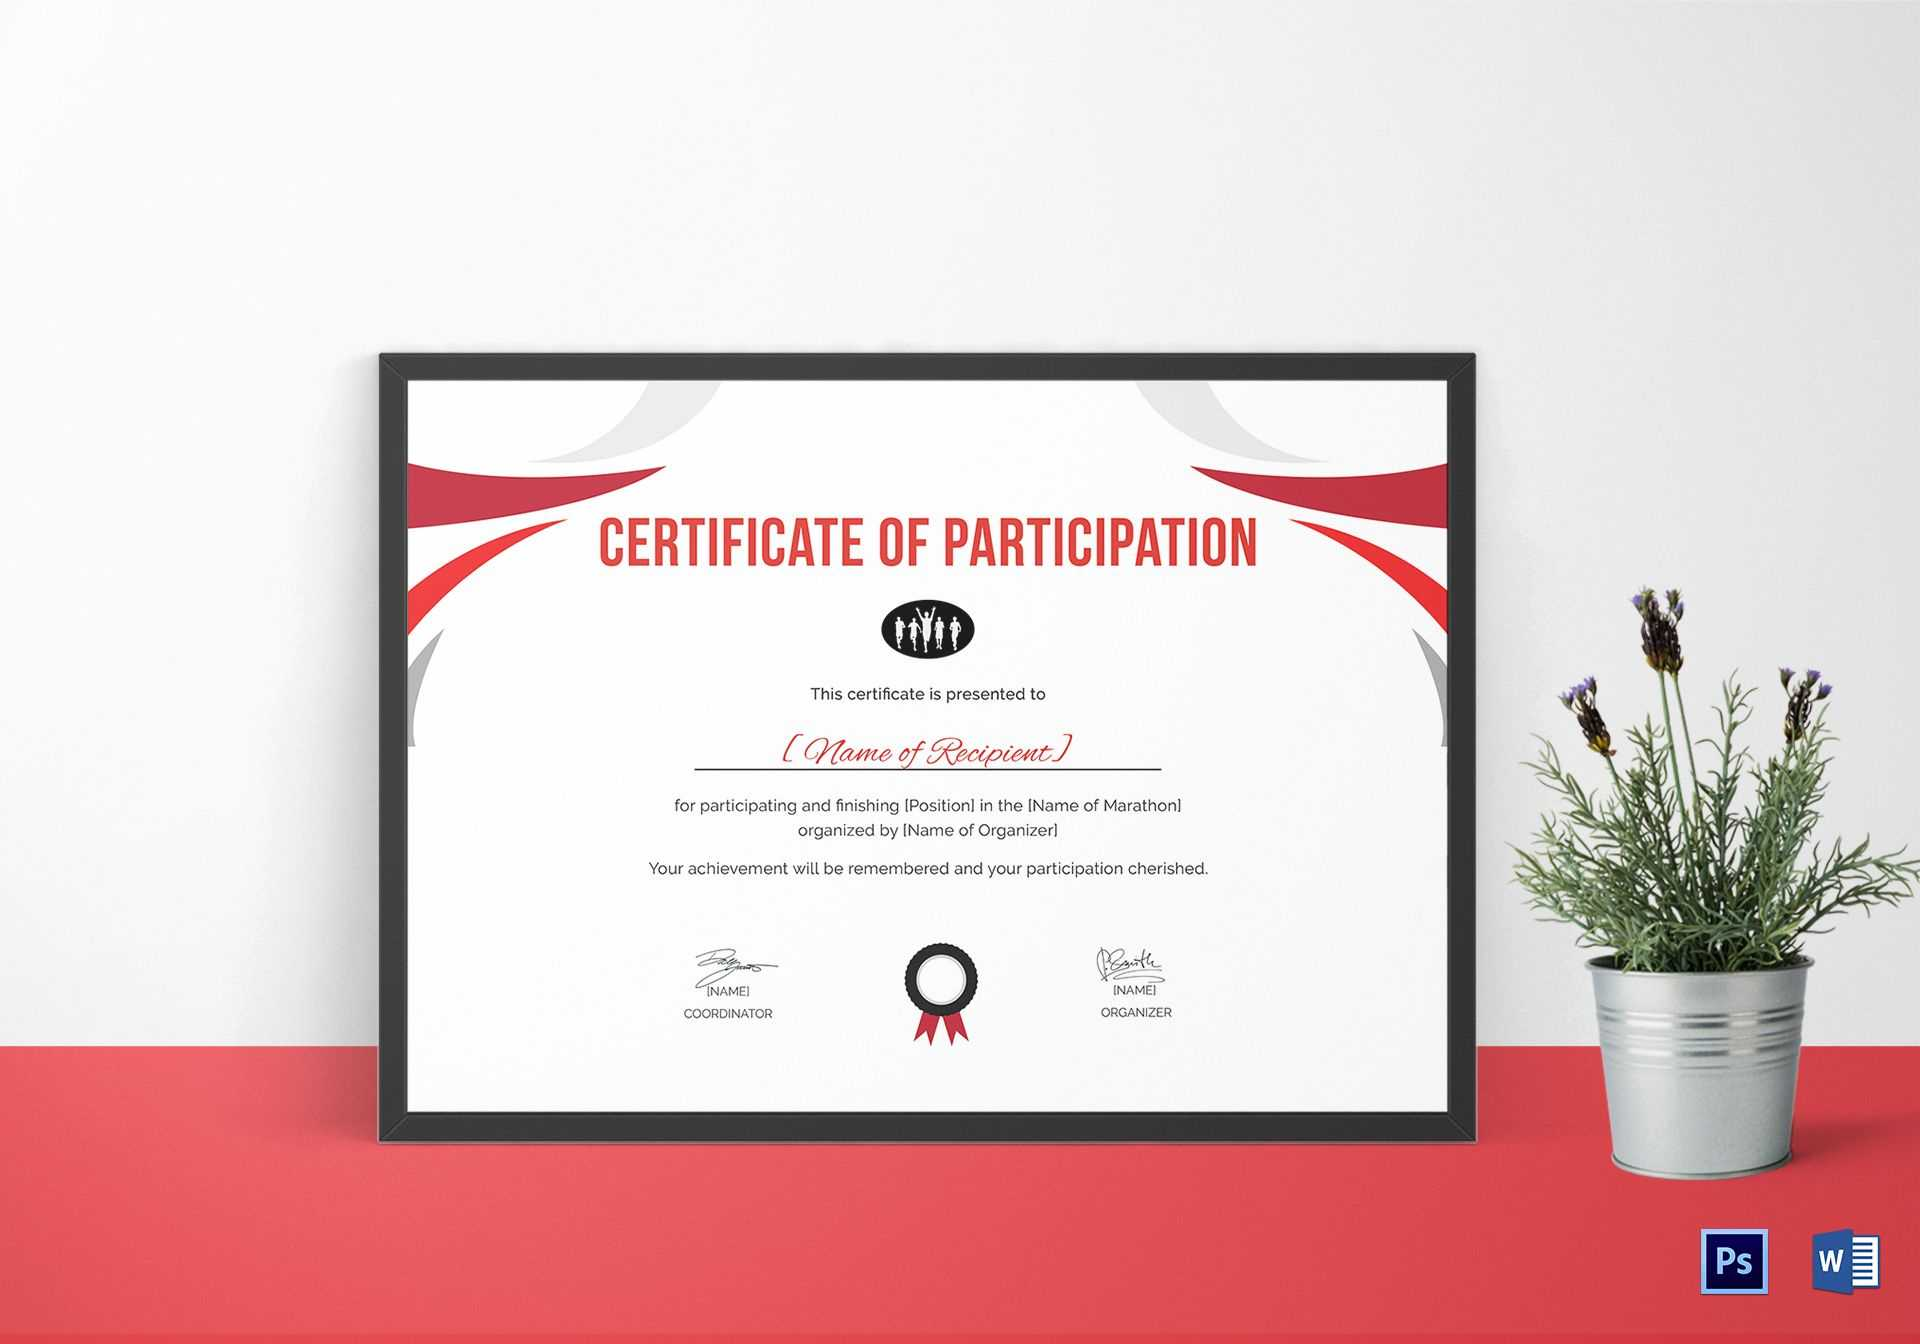 Participation Certificate For Running Template Throughout Running Certificates Templates Free